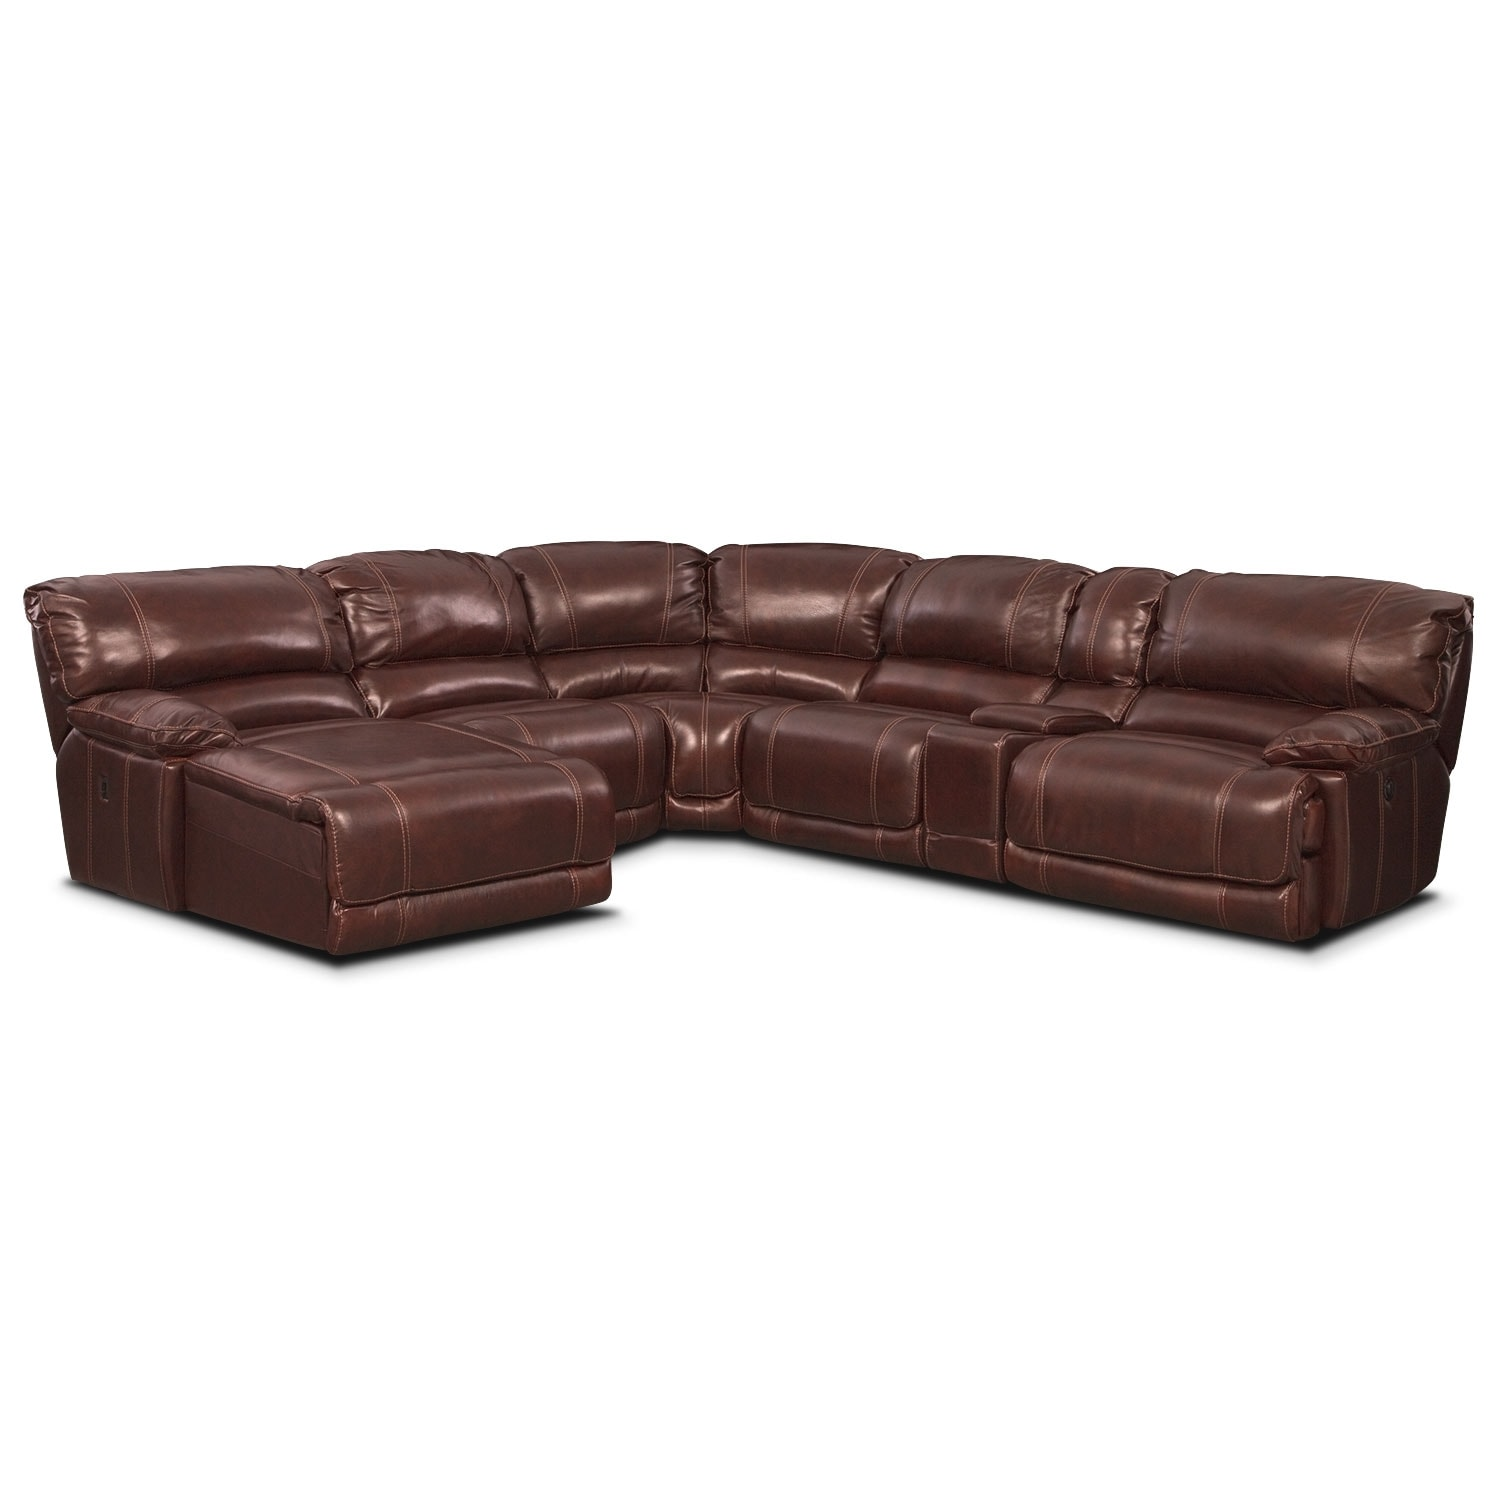 Power Reclining Sectional With Right Press Back Chaise By: St. Malo 6-Piece Power Reclining Sectional With Left